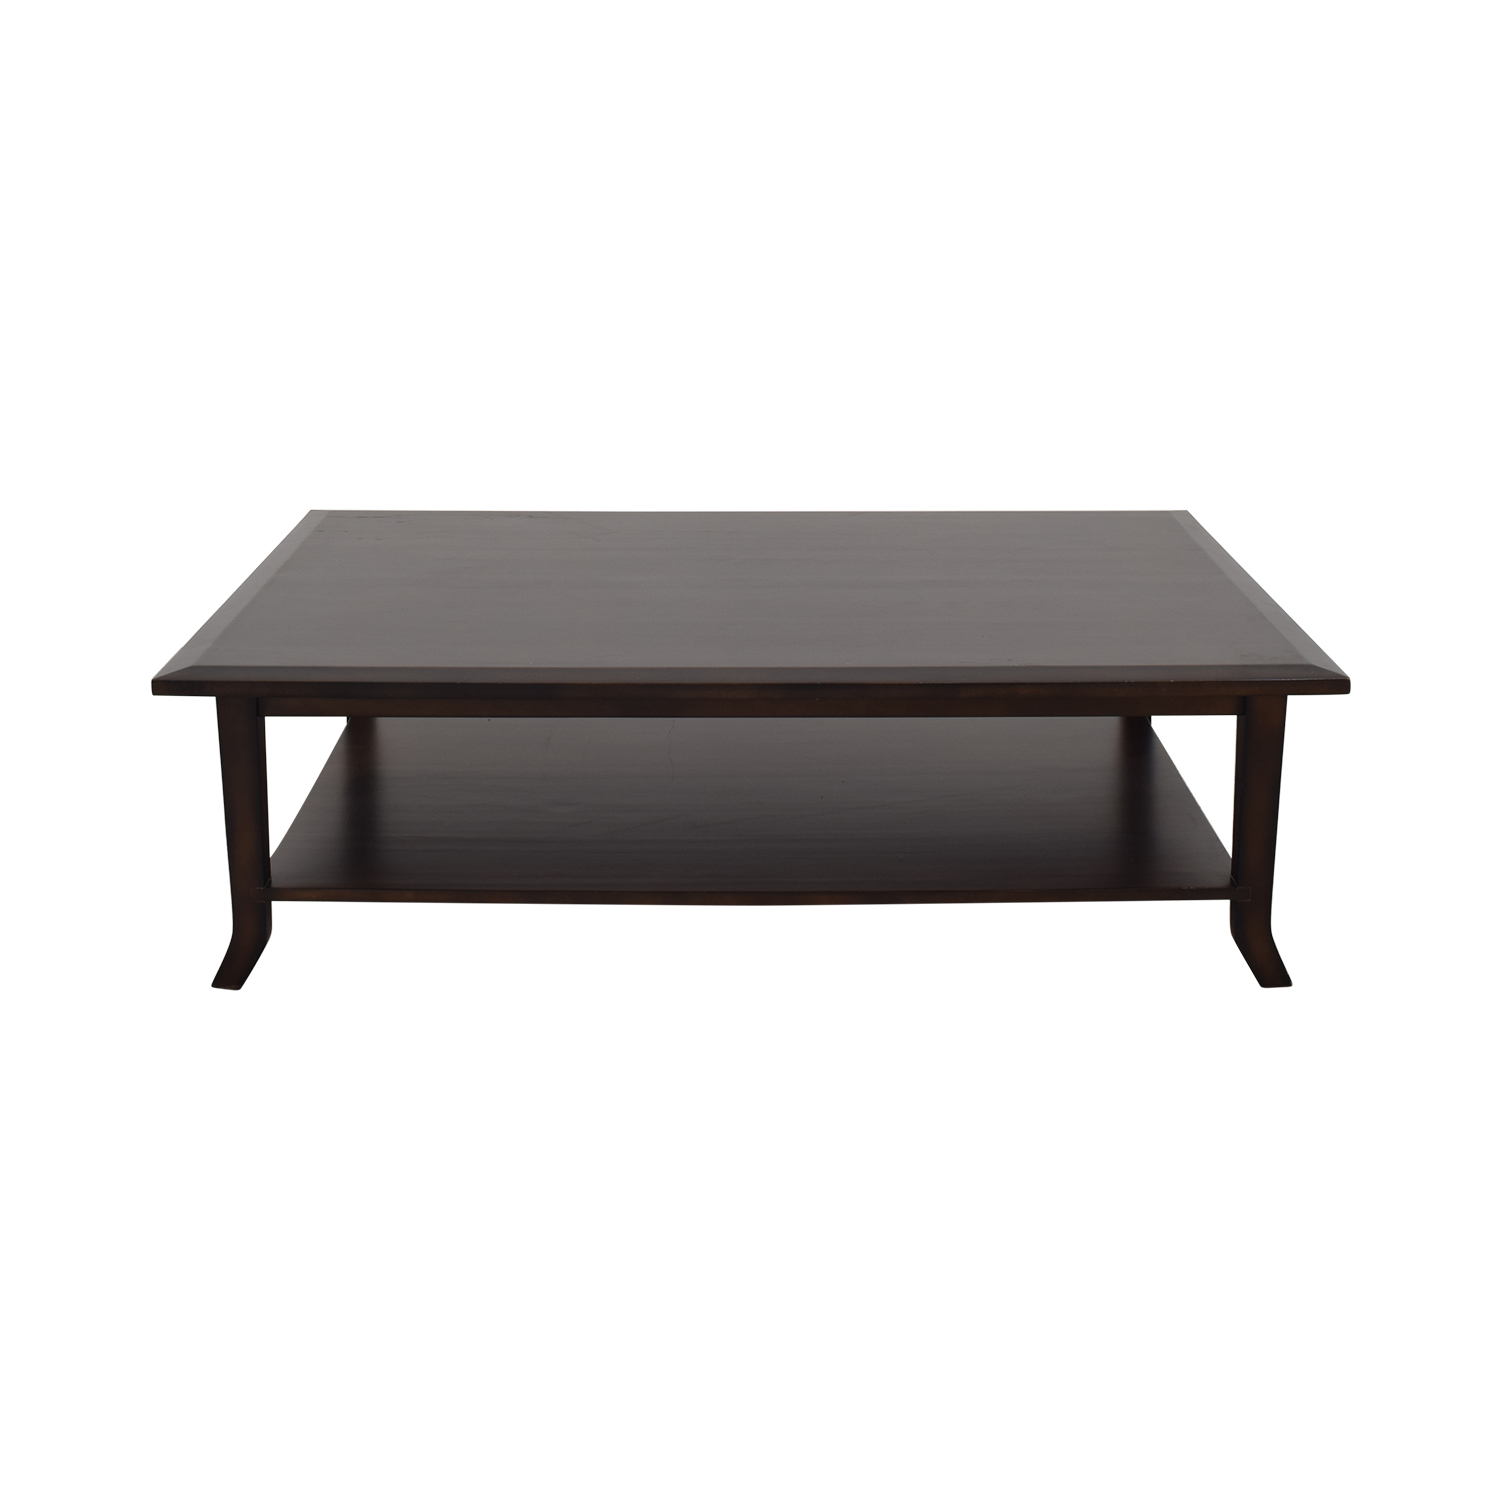 ABC Carpet & Home Coffee Table / Tables